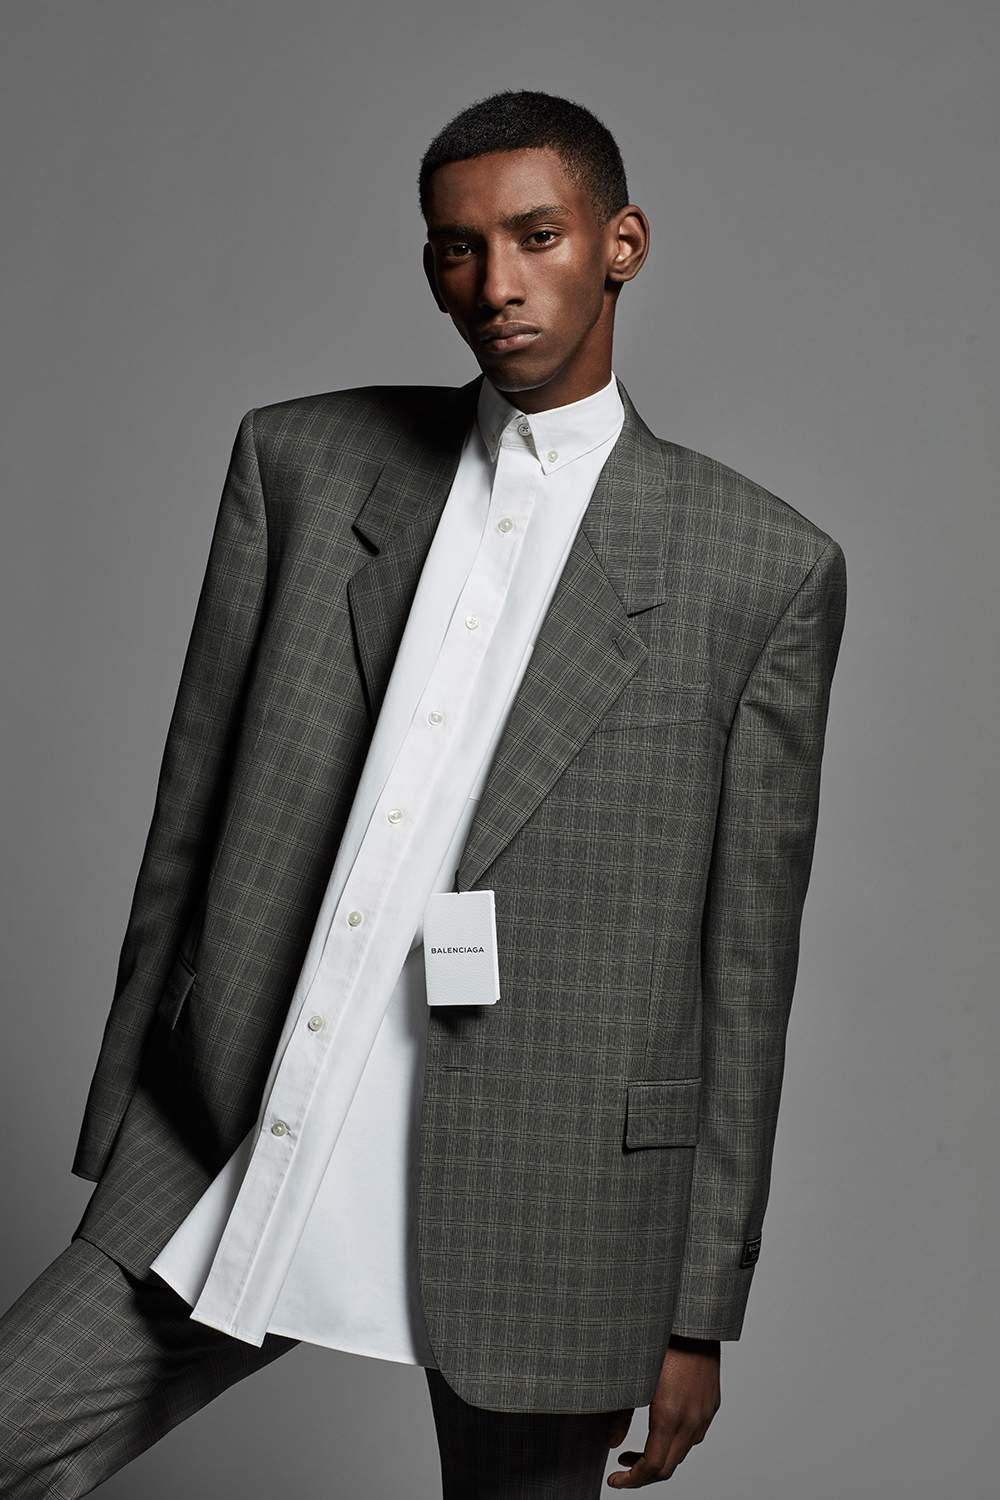 A male model wearing a patterned oversized blazer